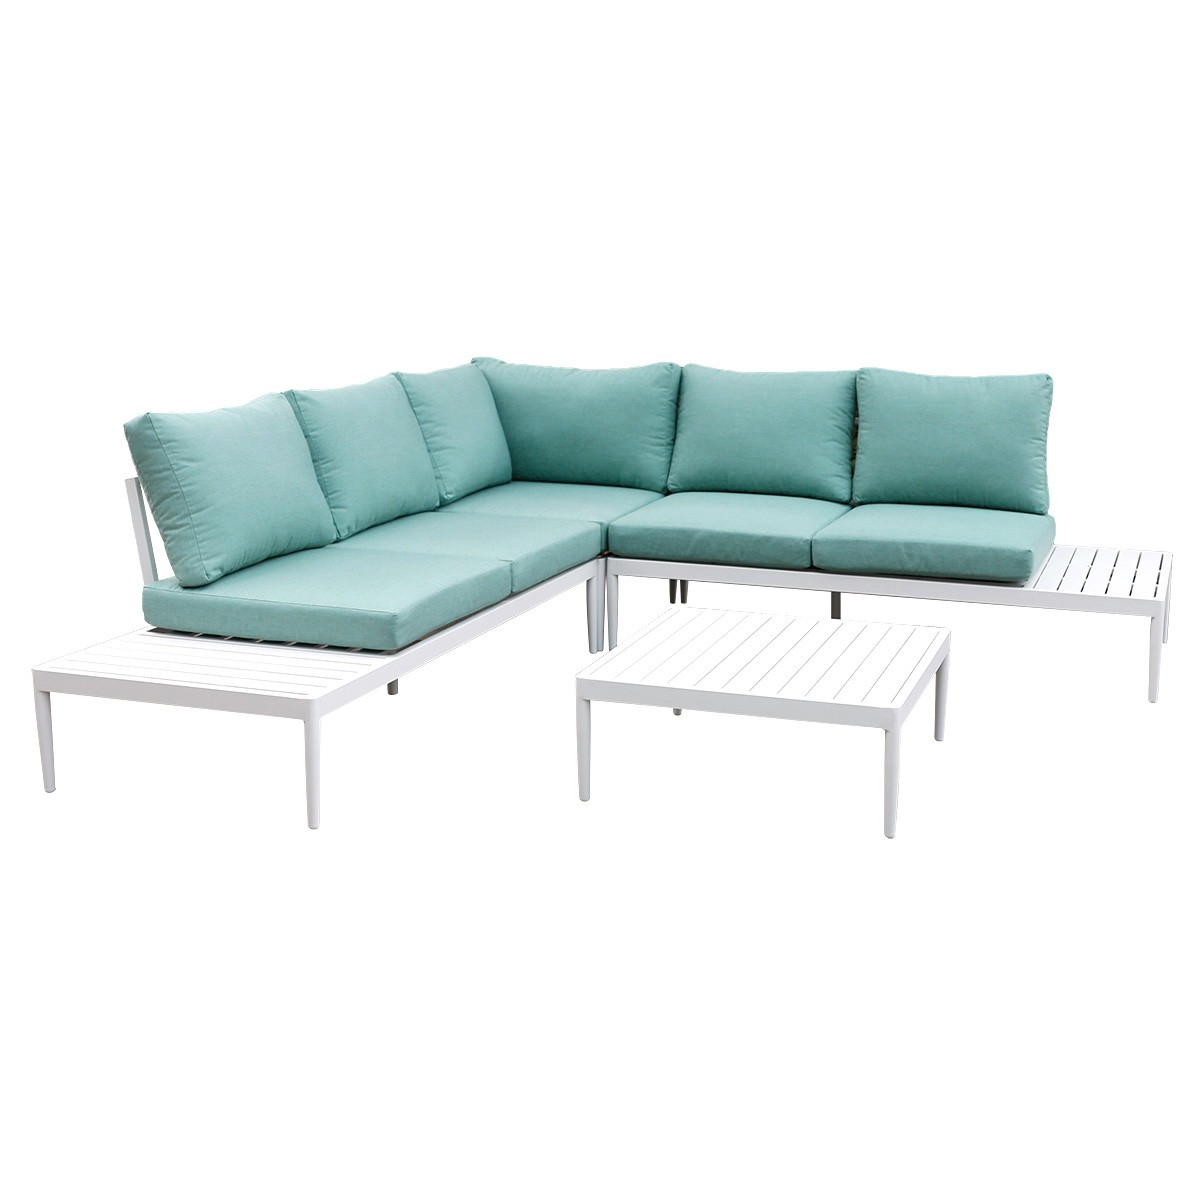 Coogee 4 Piece Aluminium Outdoor Lounge Set